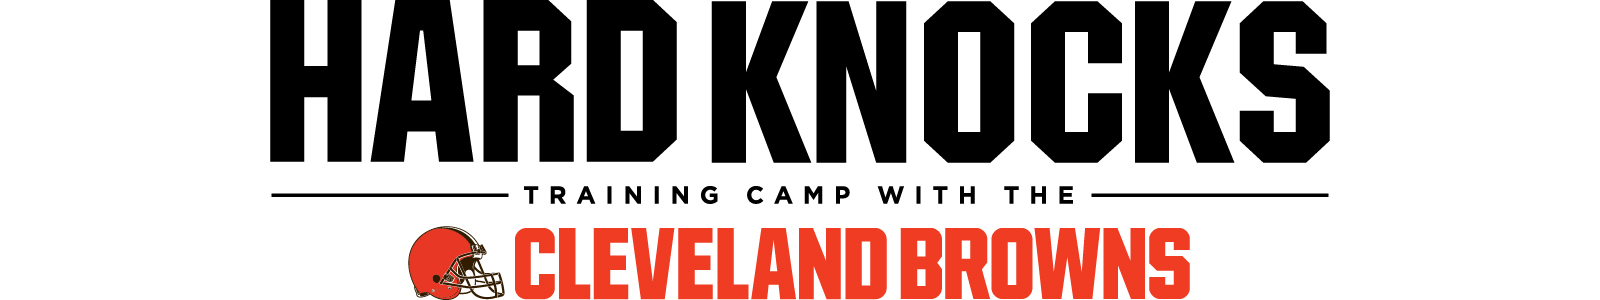 hard knocks cleveland browns logo